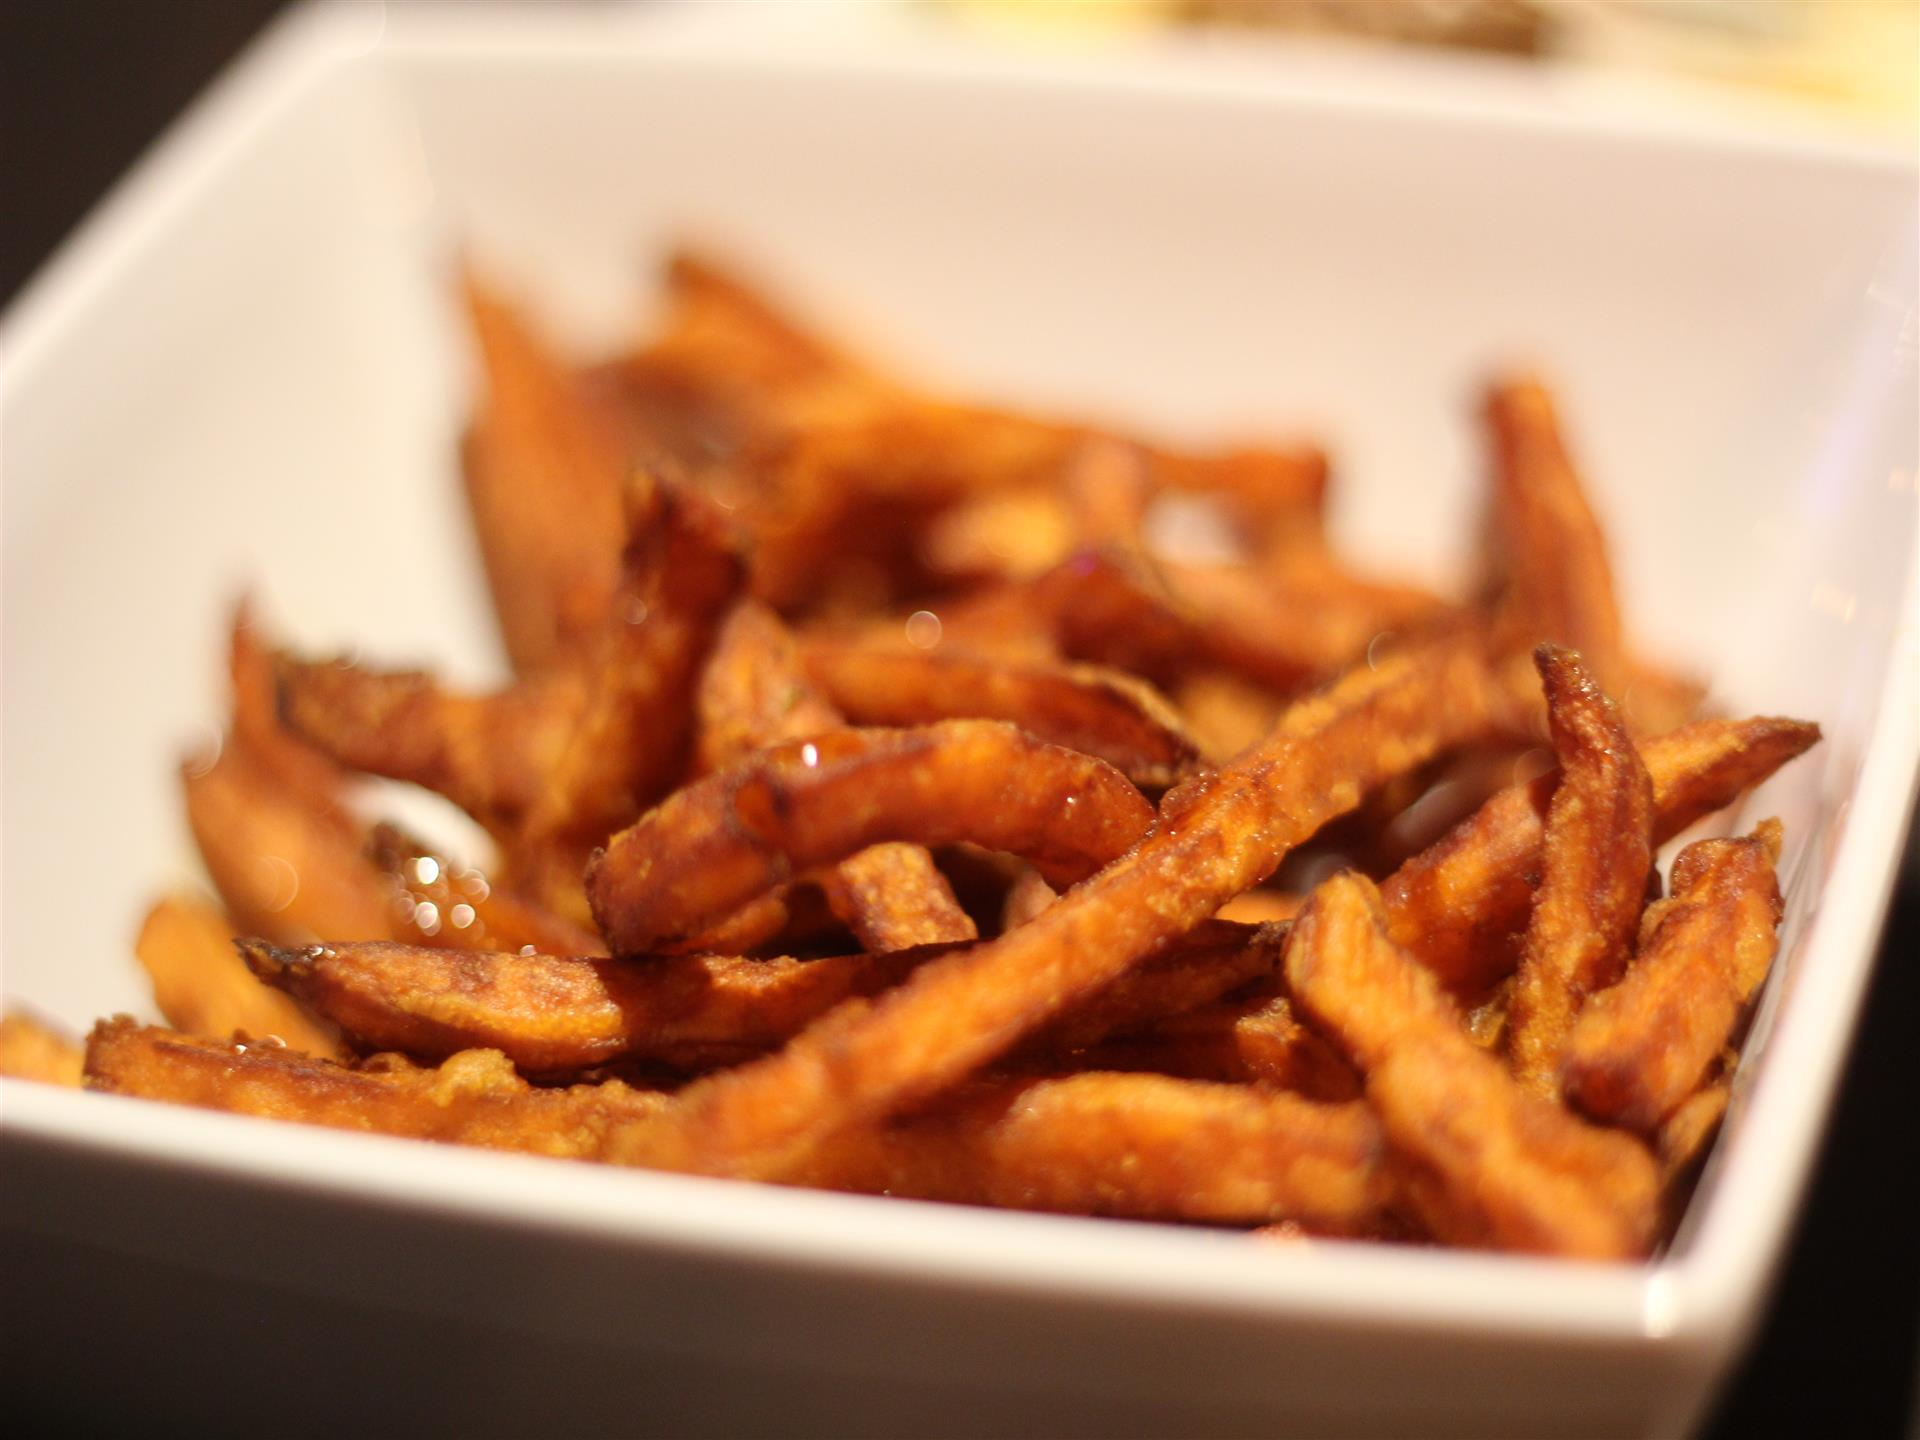 Crispy fries in bowl